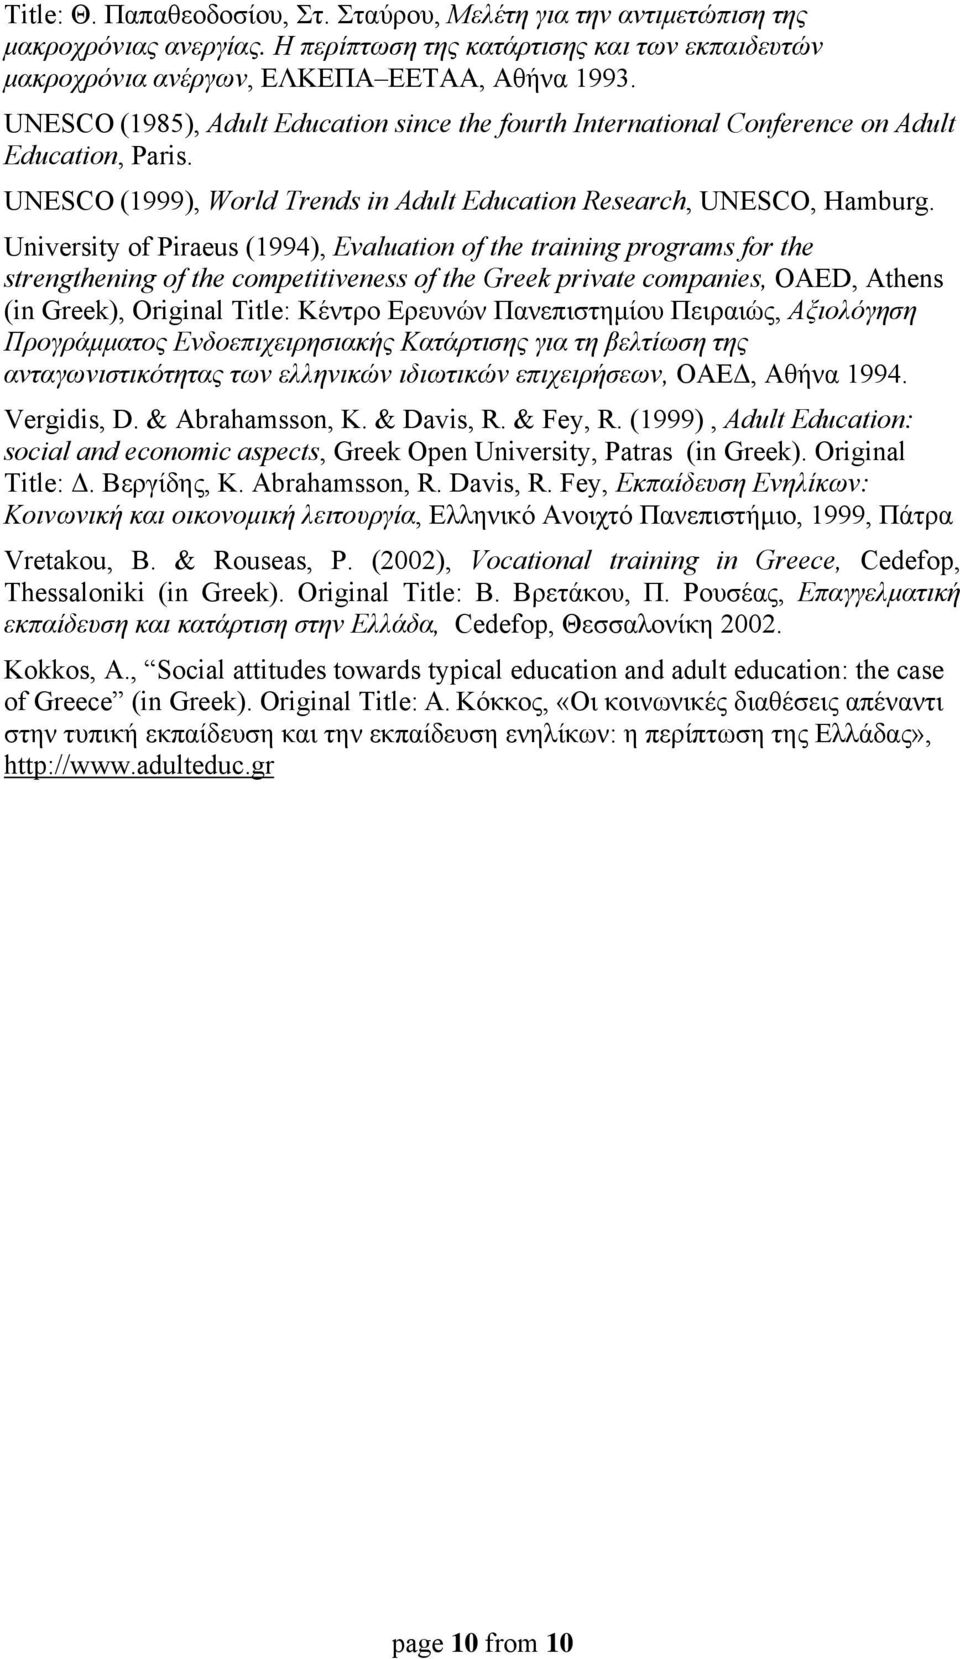 University of Piraeus (1994), Evaluation of the training programs for the strengthening of the competitiveness of the Greek private companies, OAED, Athens (in Greek), Original Title: Κέντρο Ερευνών